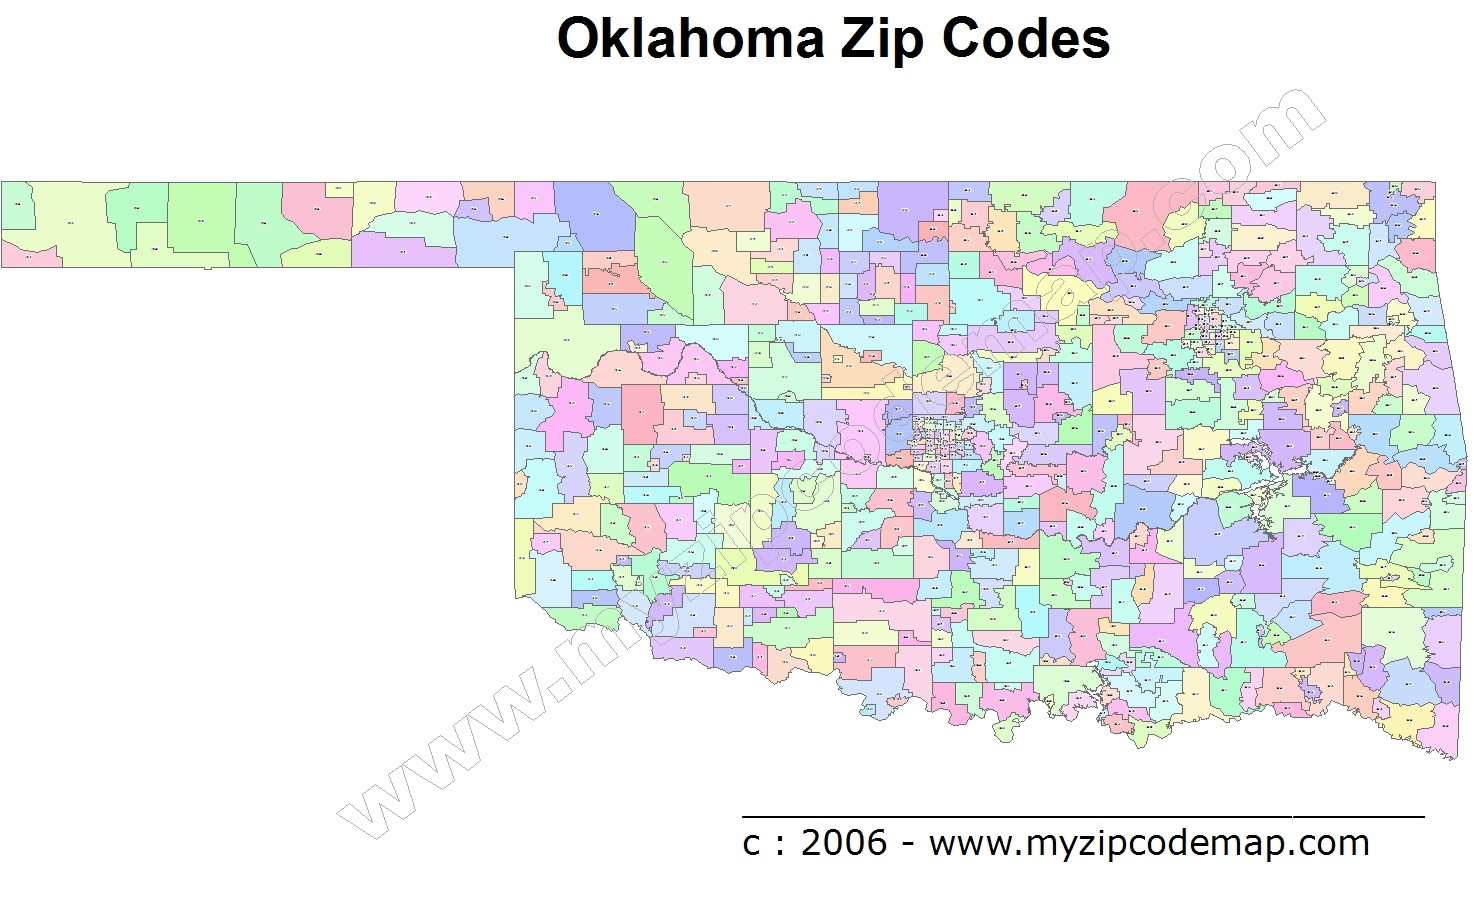 Oklahoma (OK) Zip Code Map